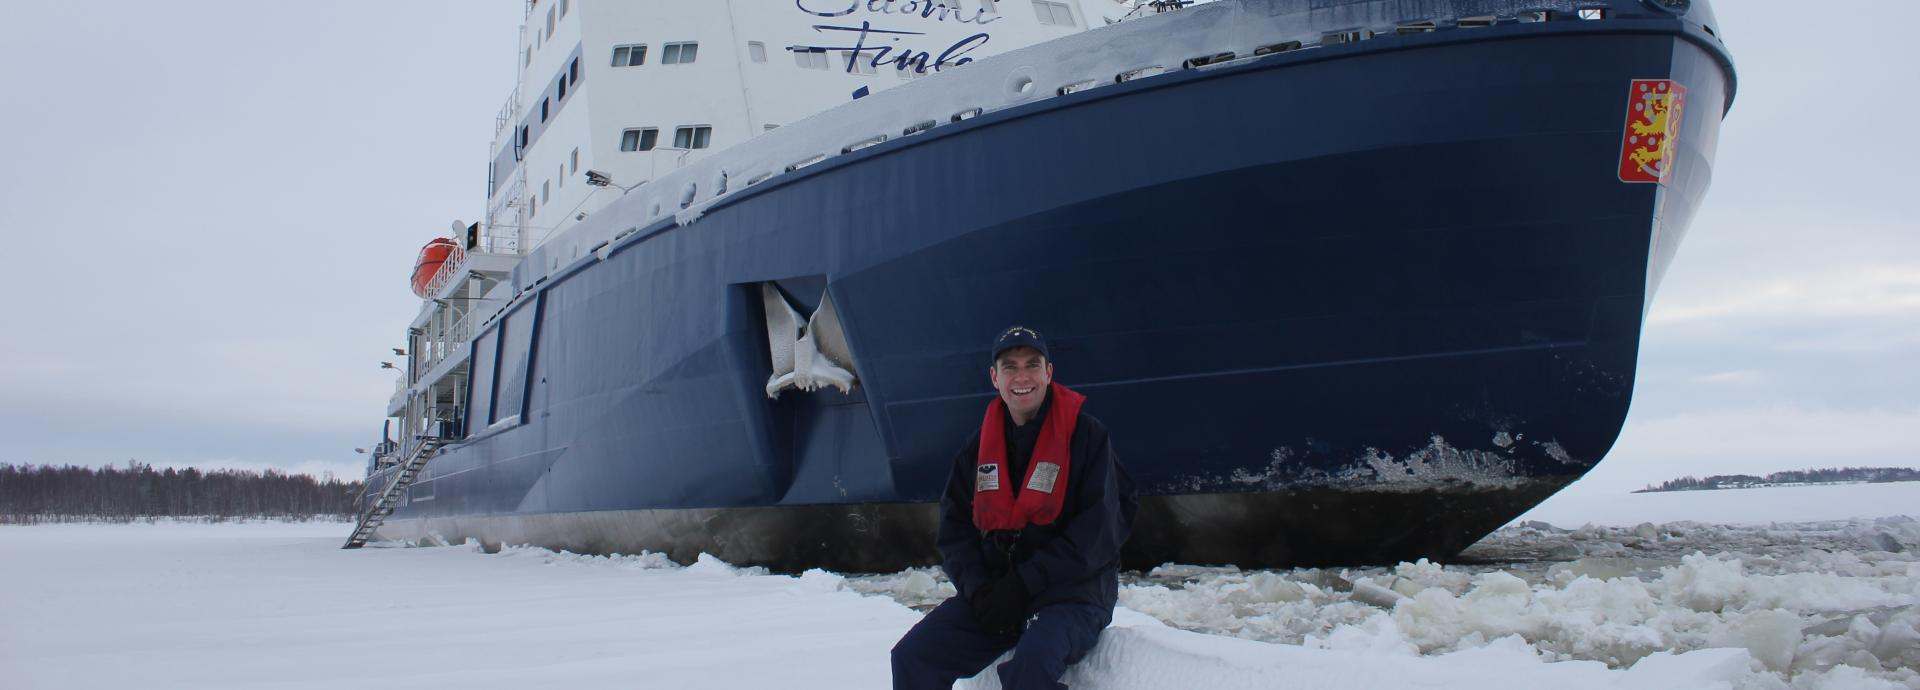 Fulbright Finland Mid-Career Professional Development program participant in front of a Finnish icebreaker.